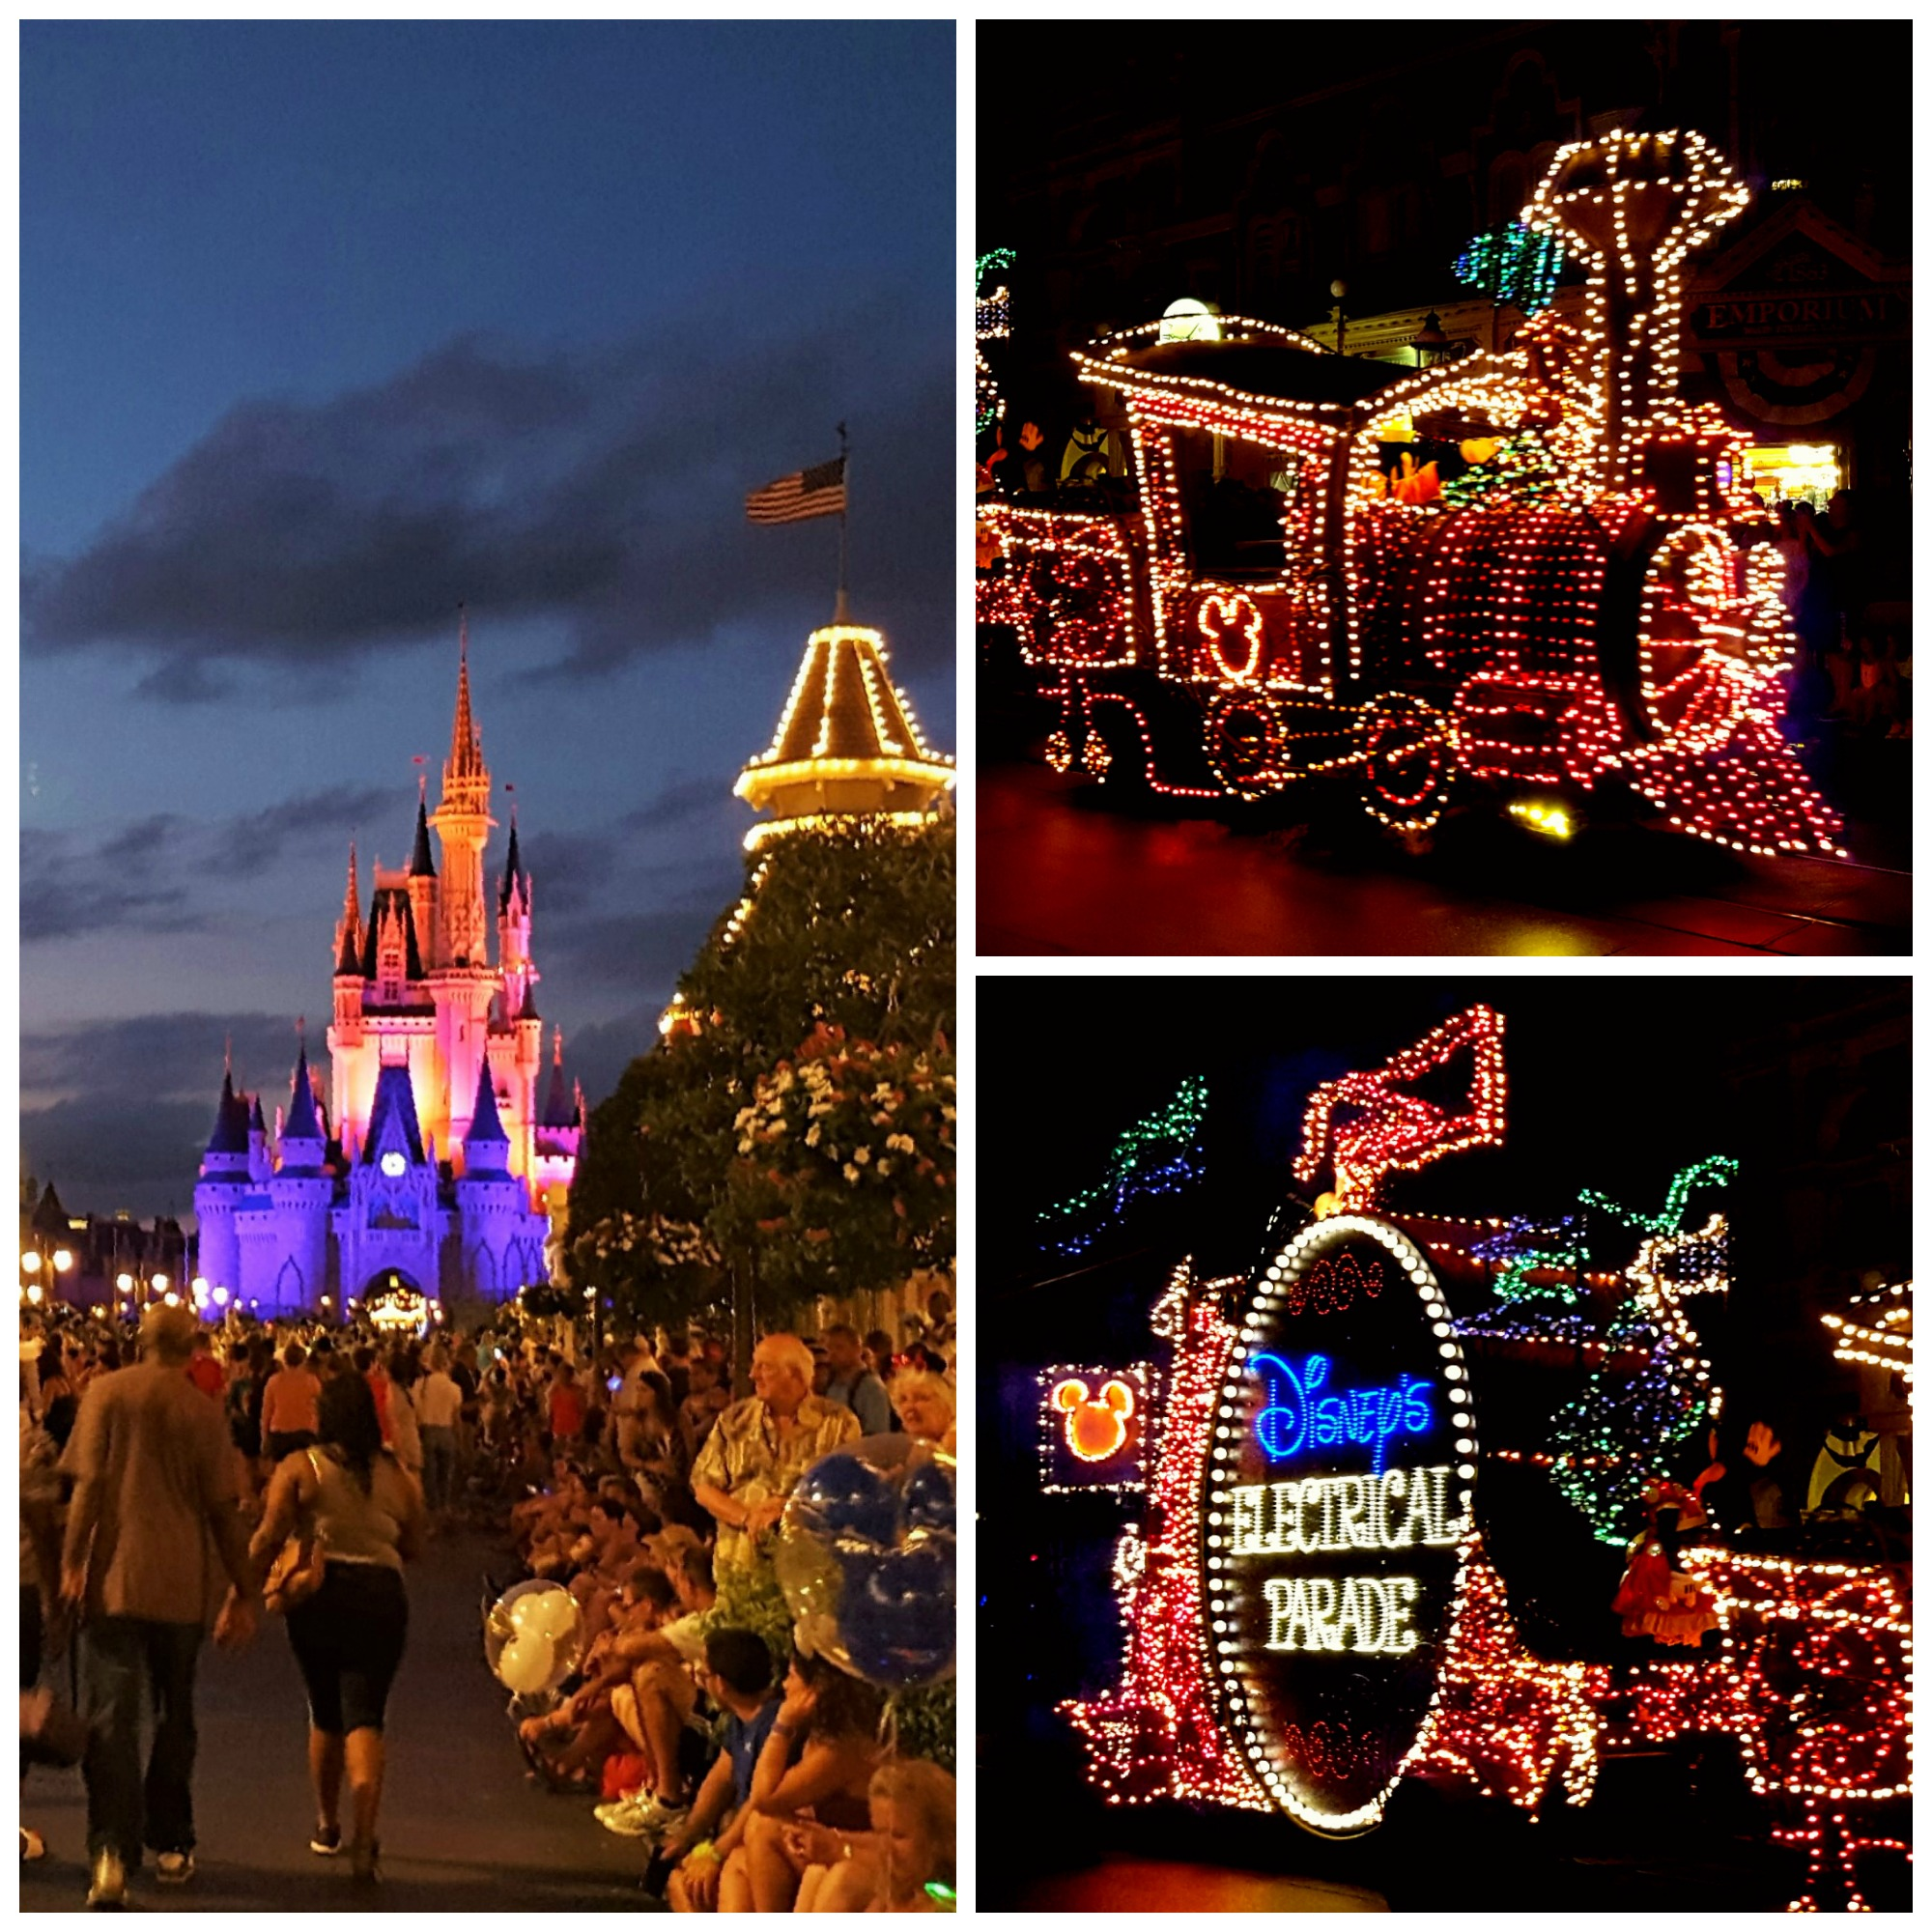 Lysparade i Magic Kingdom Florida